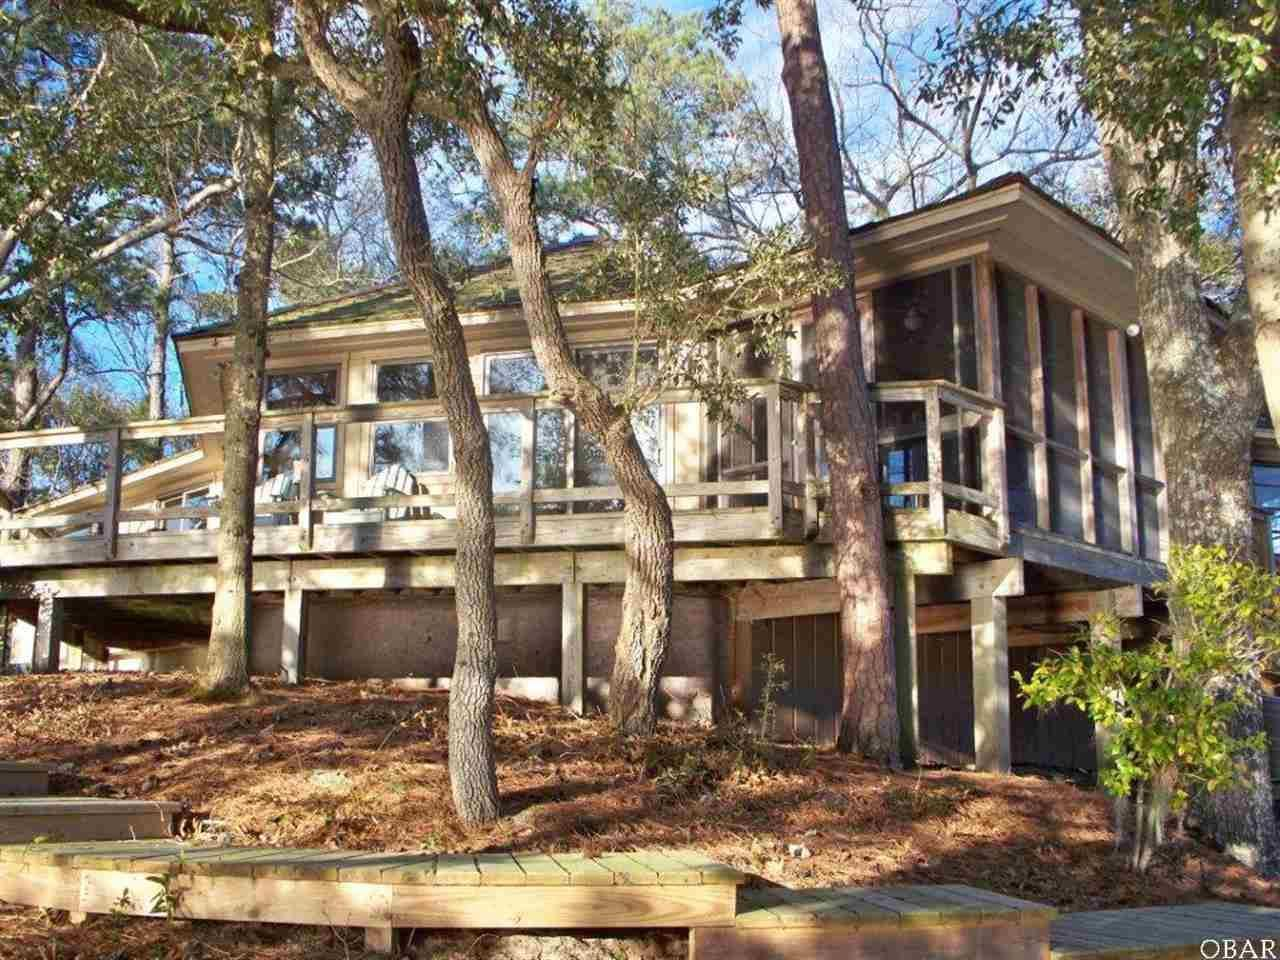 1 Point Comfort Lane Lot #17, Southern Shores, NC 27949. Once in a lifetime opportunity! Waterfront home in an X FLOOD ZONE! This highly elevated lot on Ginguite Creek affords 270 degree views and unsurpassed solitude. Lovingly landscaped with indigenous plants in a natural style, blooms will abound in season and foliage will provide canopy. Private deeded access to secluded adjoining open space will insure privacy through the years.